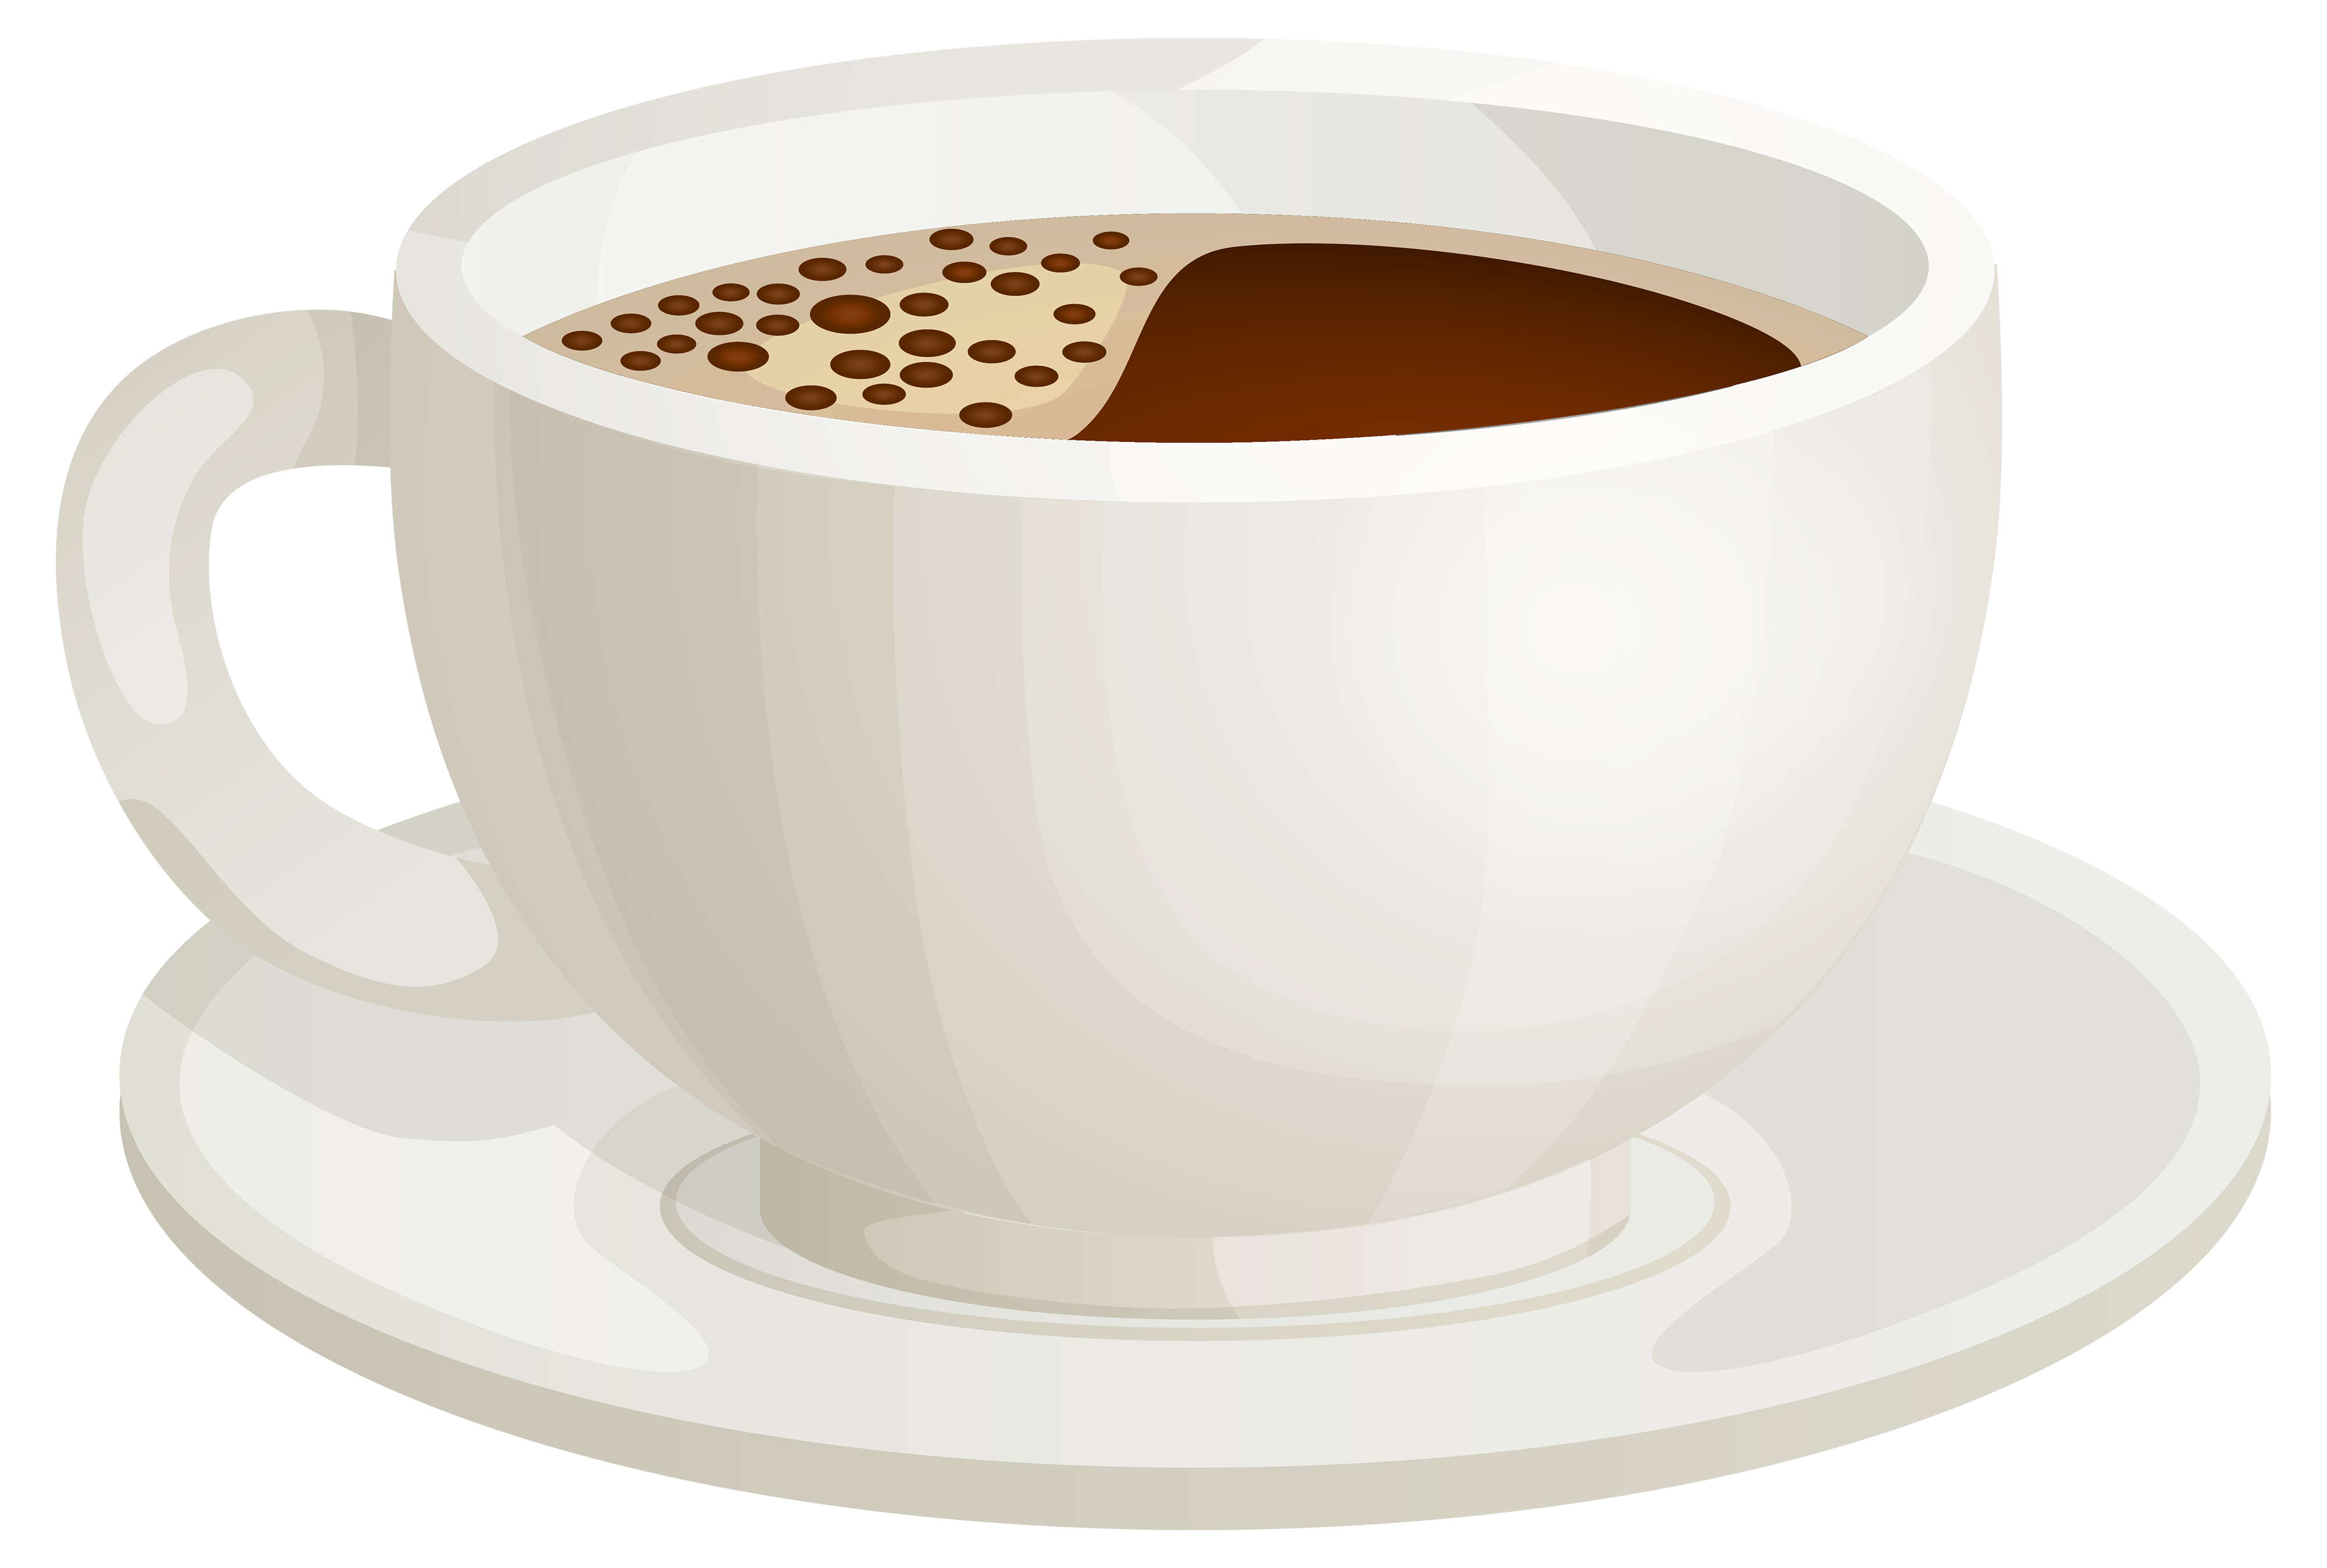 Cup of png best. Drinks clipart drink coffee